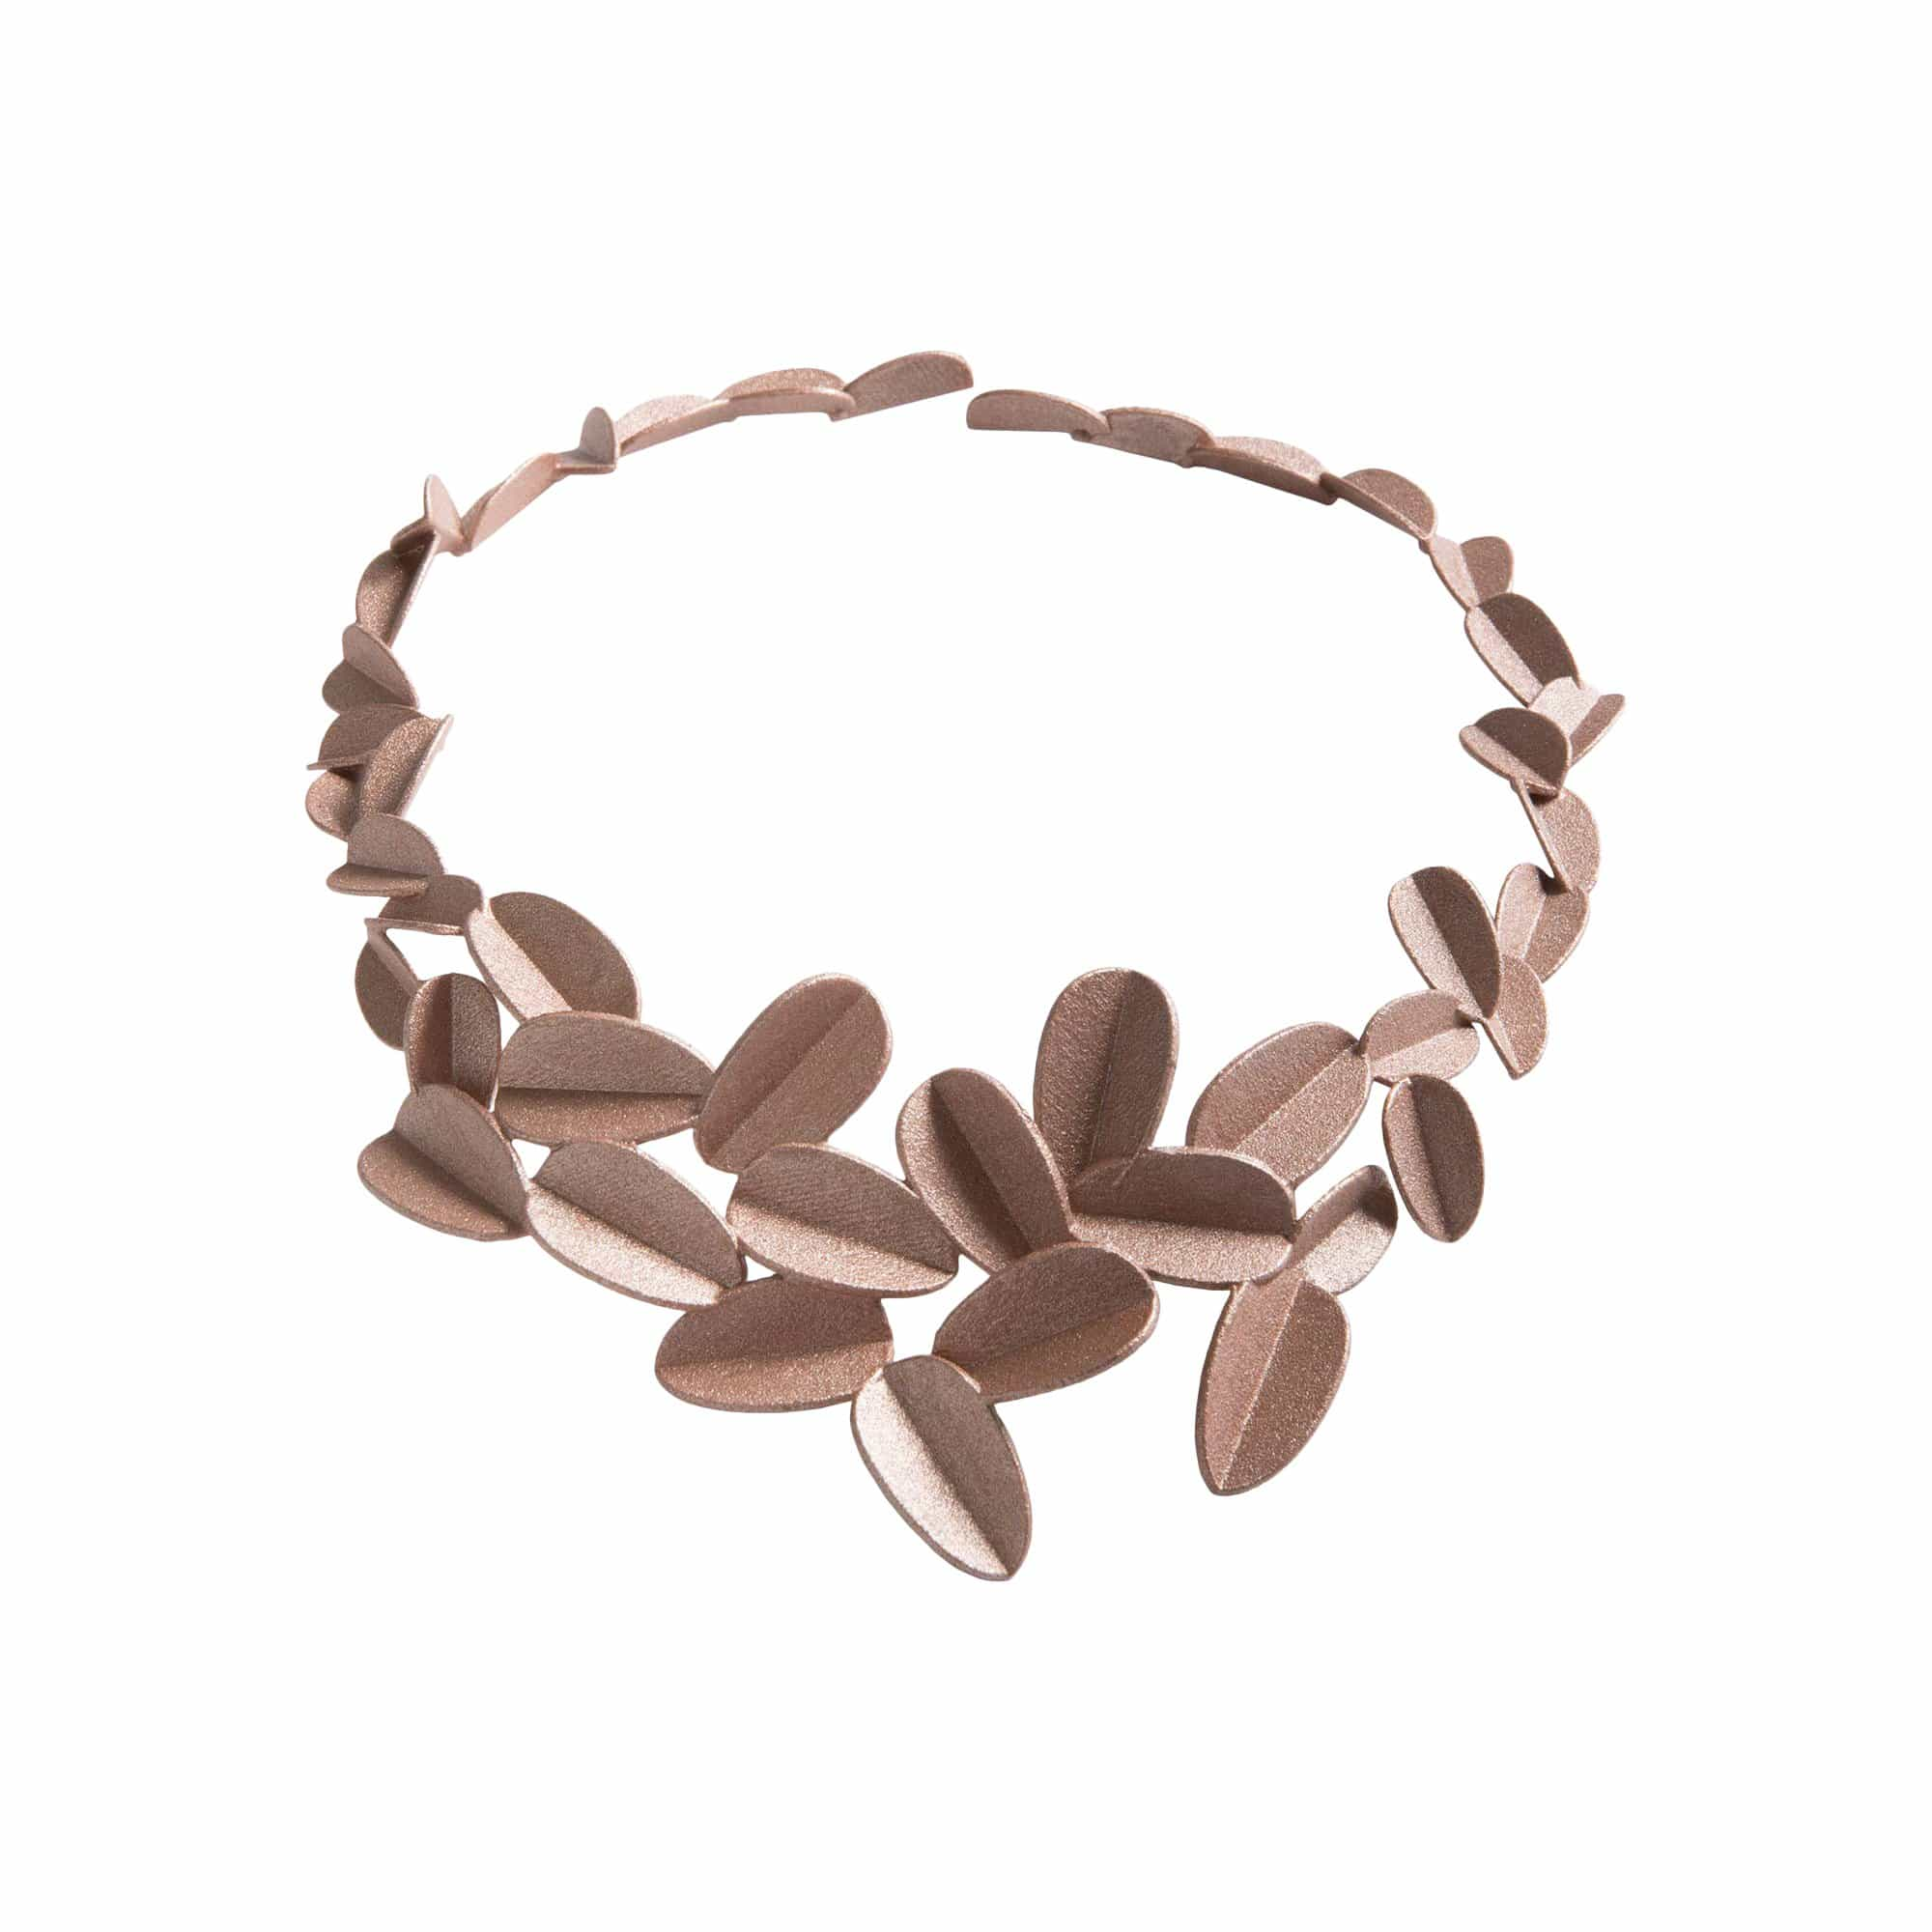 maison 203 Necklaces Rose Gold Metallic Leaves Necklace